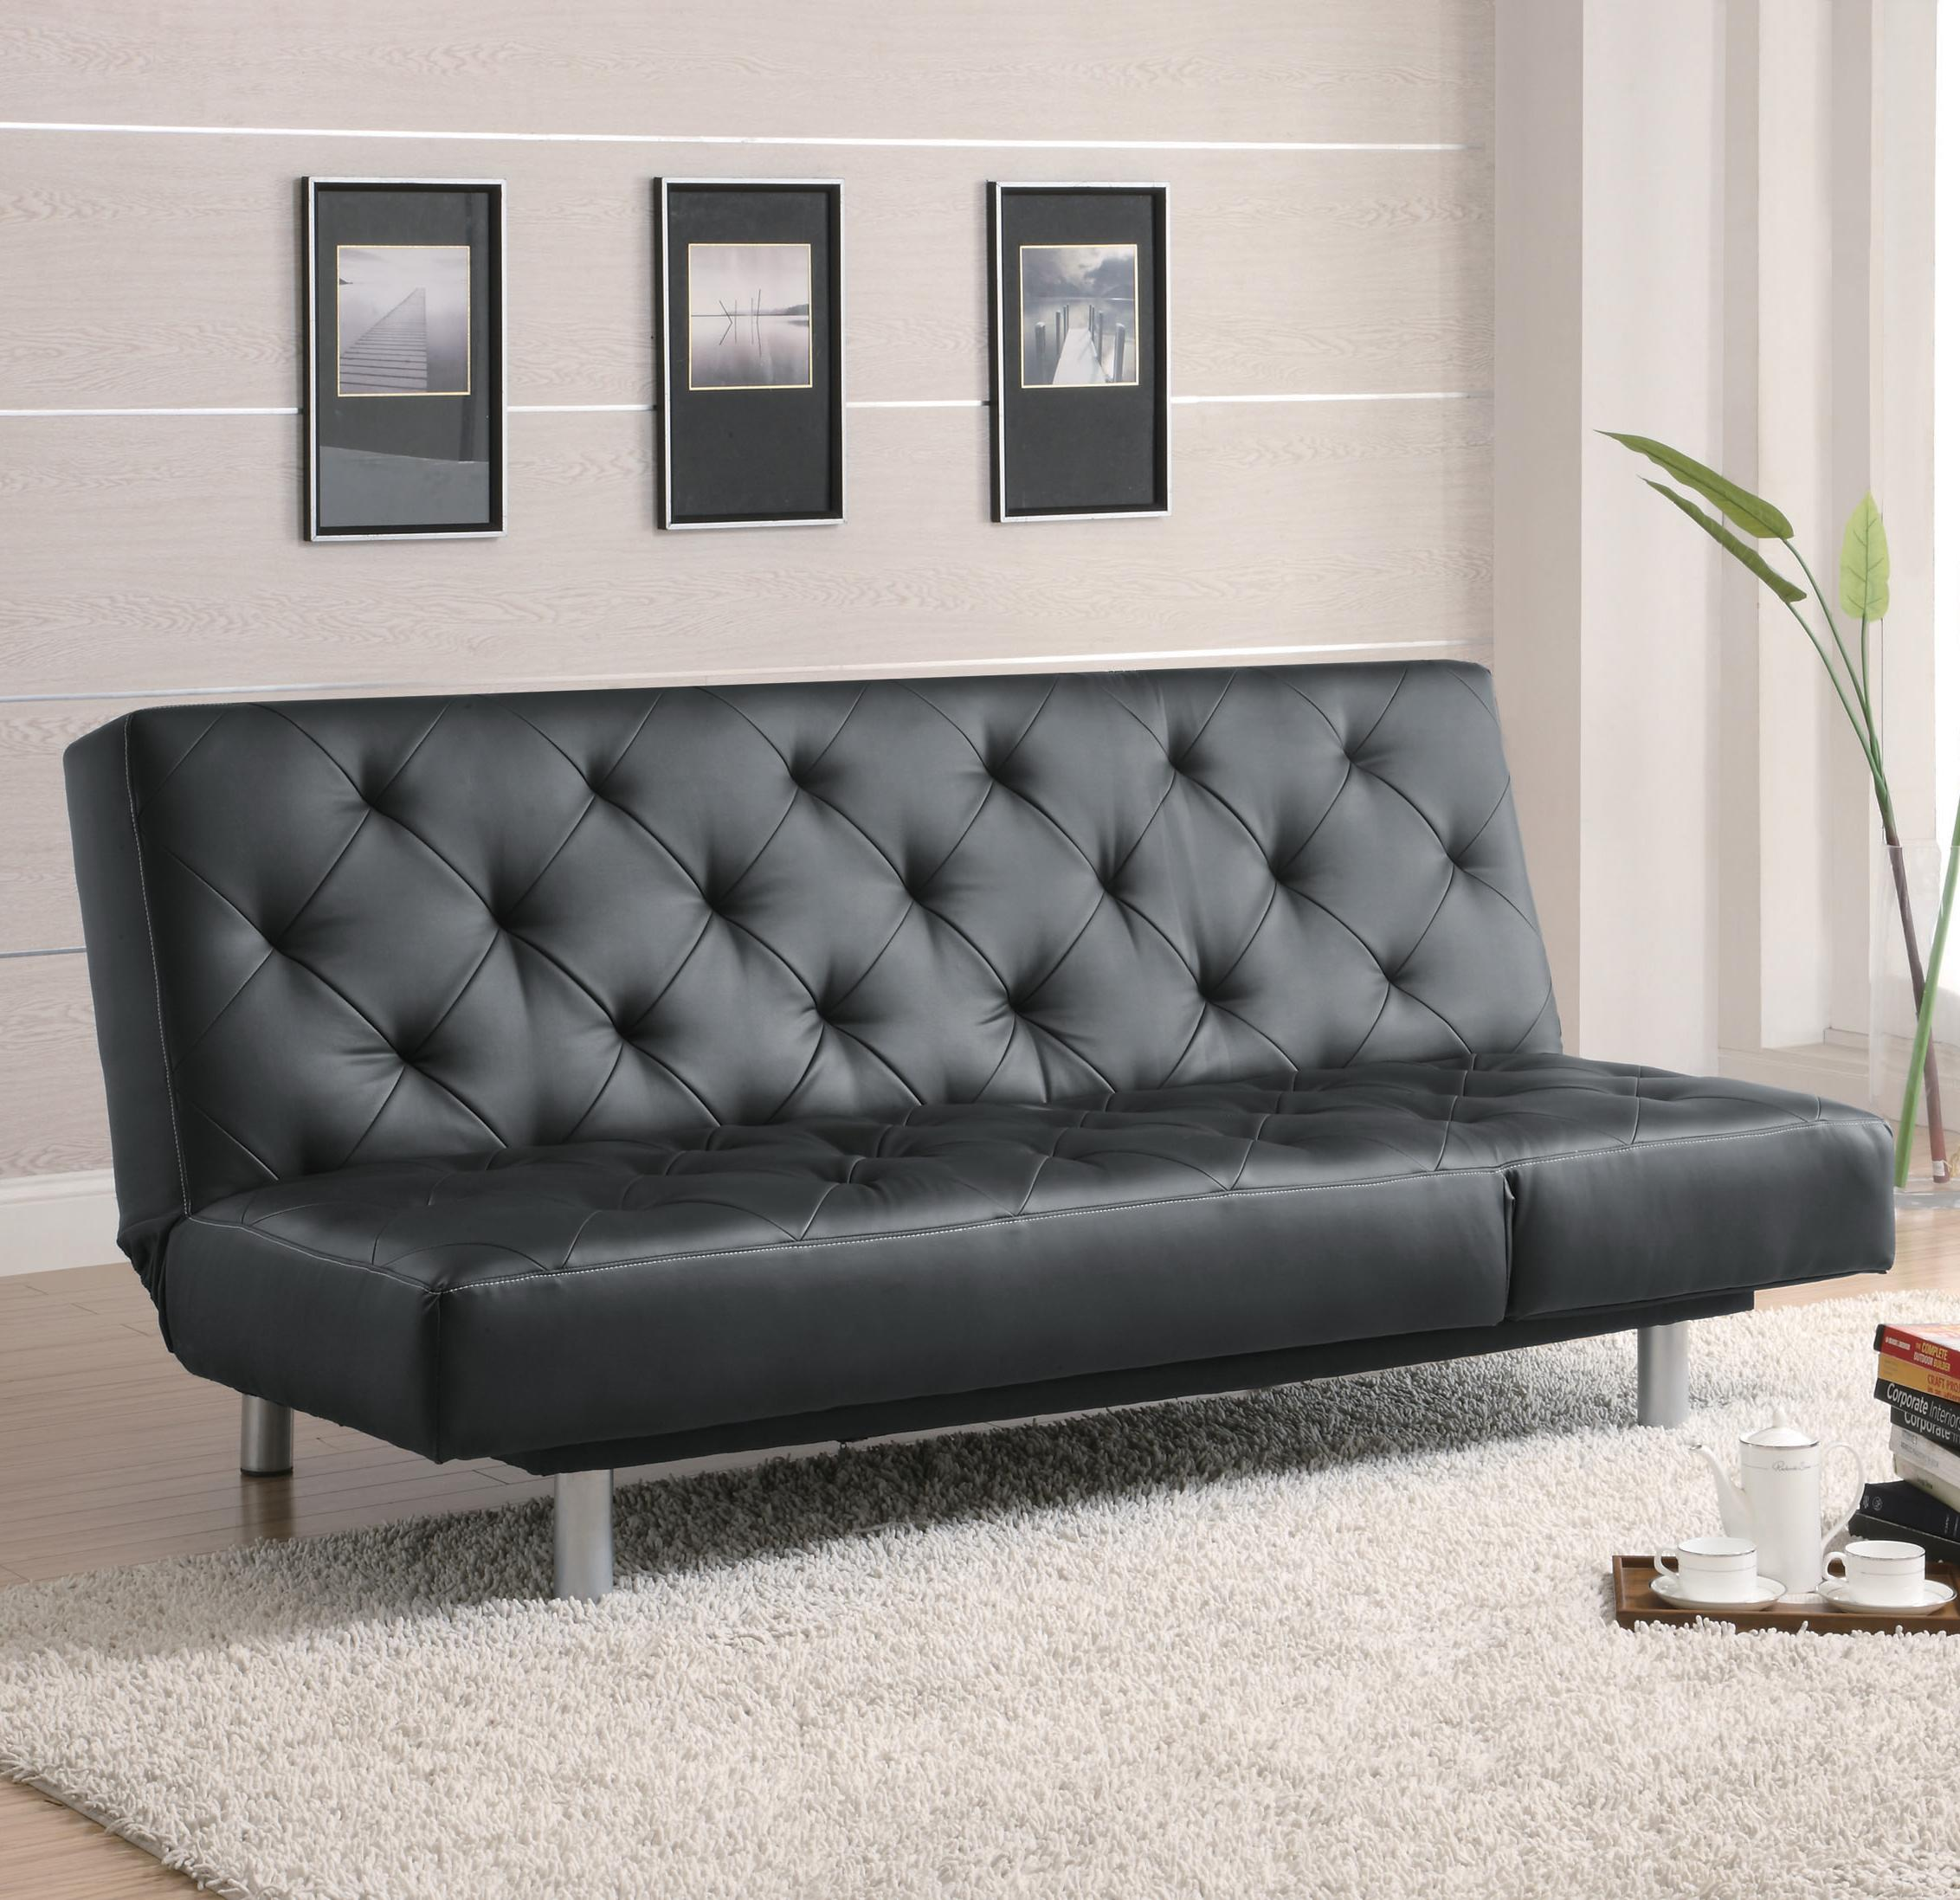 shop w rosebud drawer product city frame daybed open hg iowa futon